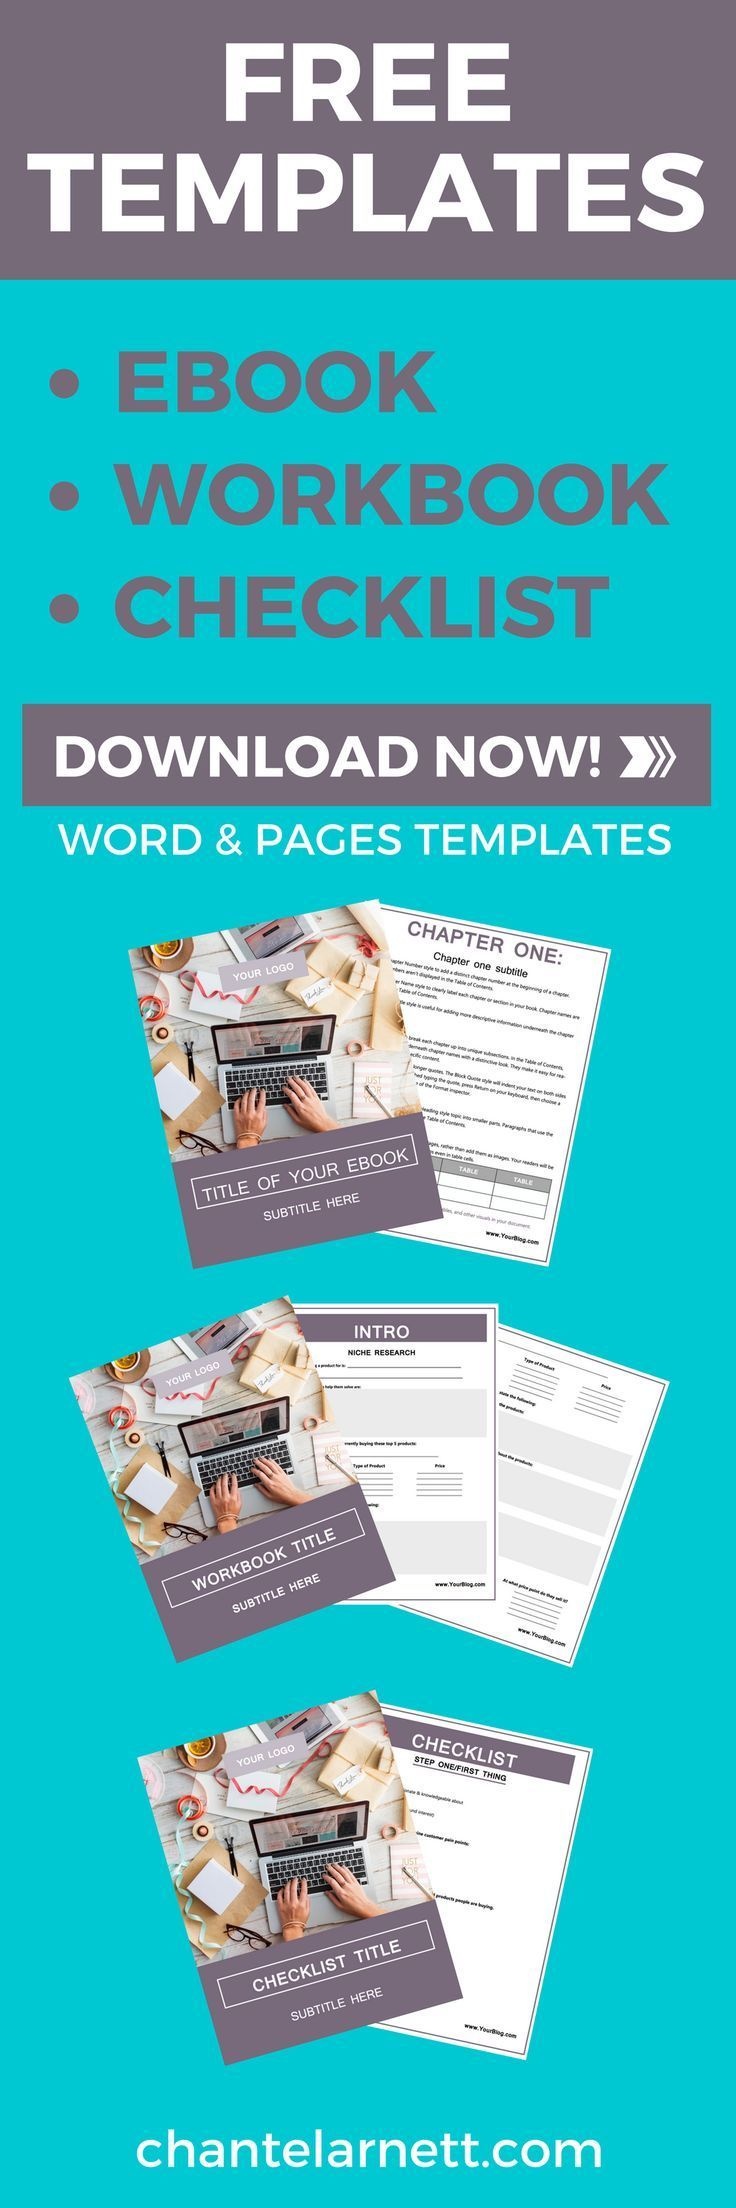 FREE editable checklist, eBook, and workbook templates in Word and Pages formats.  ebook template | ebook template free | ebook template layout | ebook template design | workbook templates | workbook template design | workbook template ideas | workbook template free printable | checklist template | checklist template editable | printables